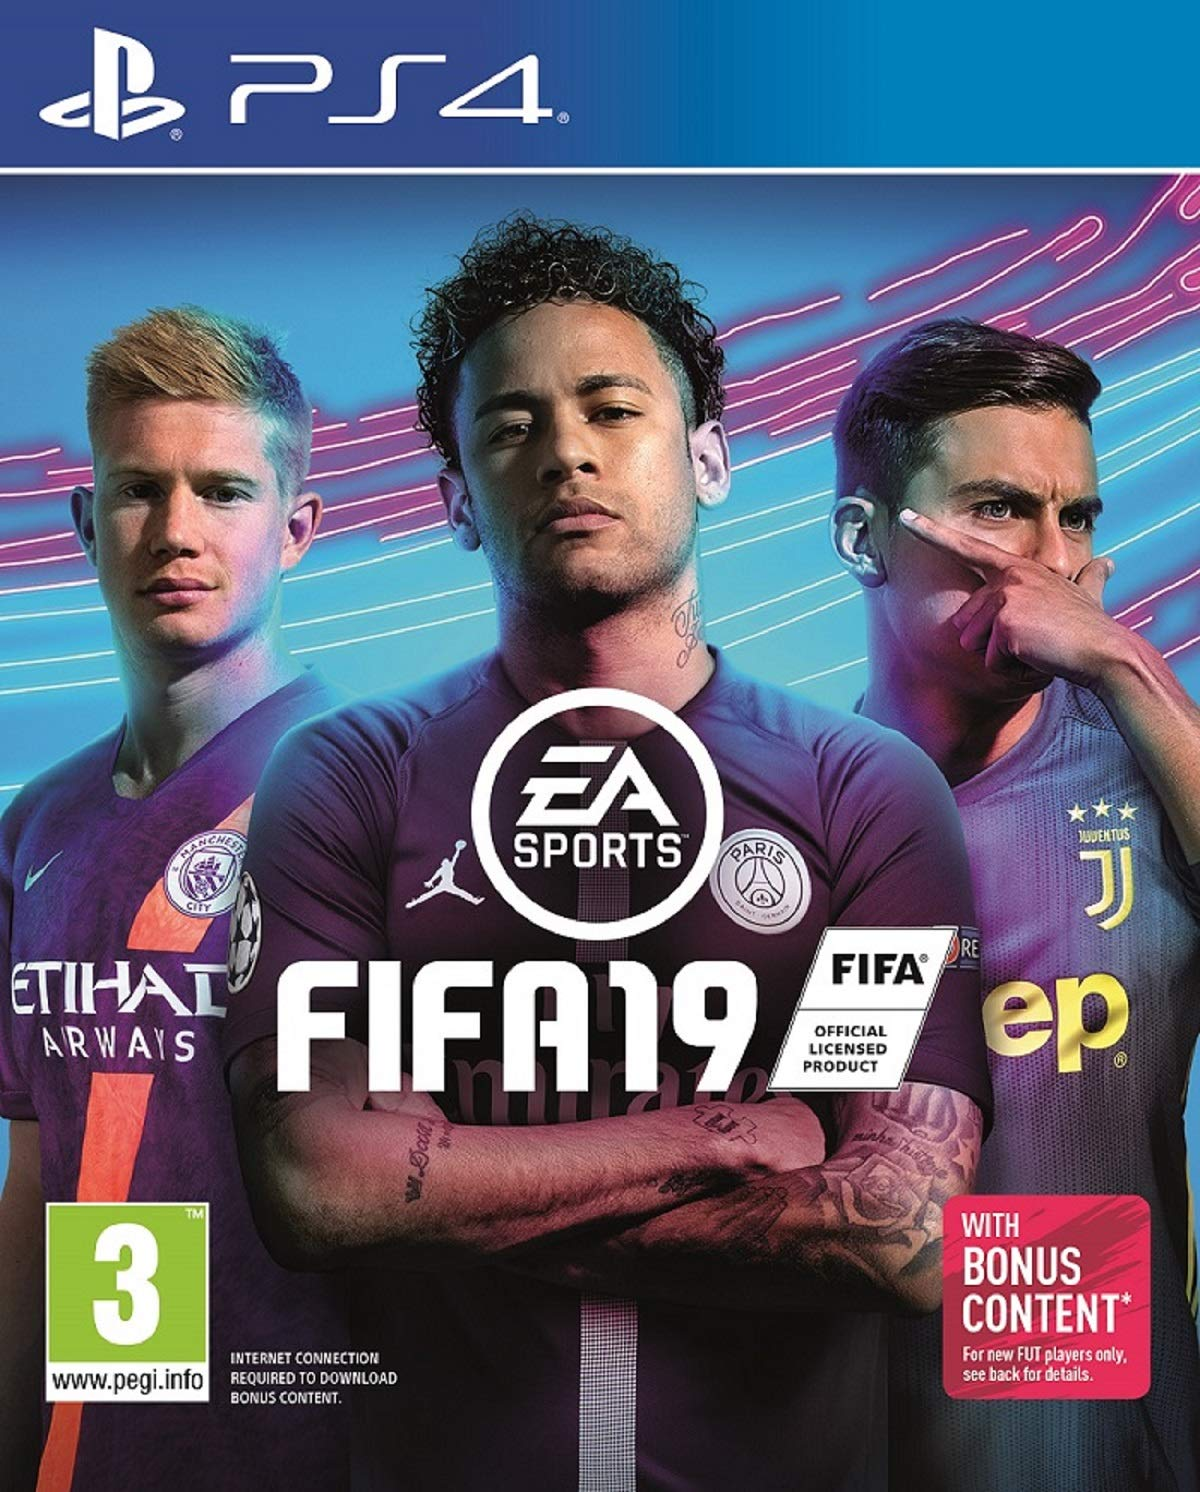 Buy Fifa 19 (PS4) Online at Low Prices in India | Electronic